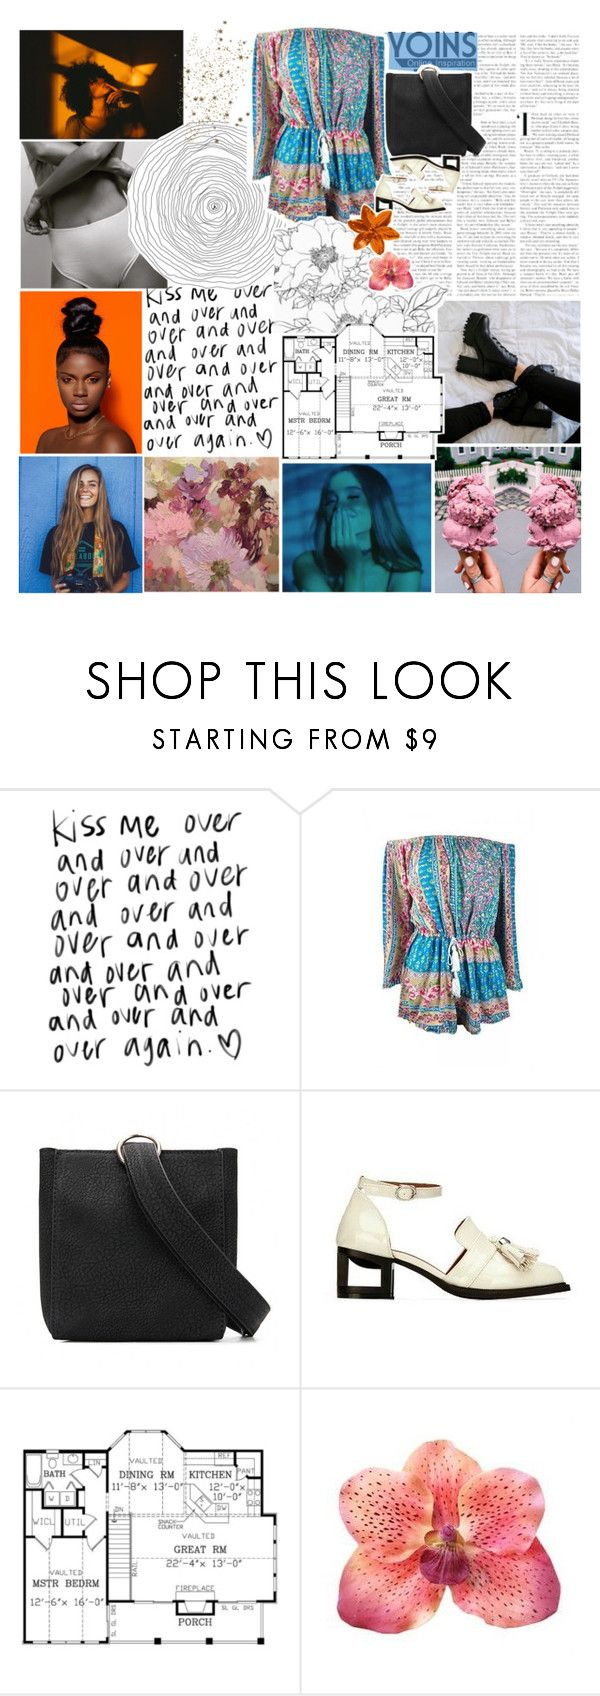 """""""☾ yoins 03"""" by thundxrstorms ❤ liked on Polyvore featuring yoins, yoinscollection, loveyoins, DestinyHasBeenSummoned, MeenaGotTagged and gottatagrandomn3ss"""